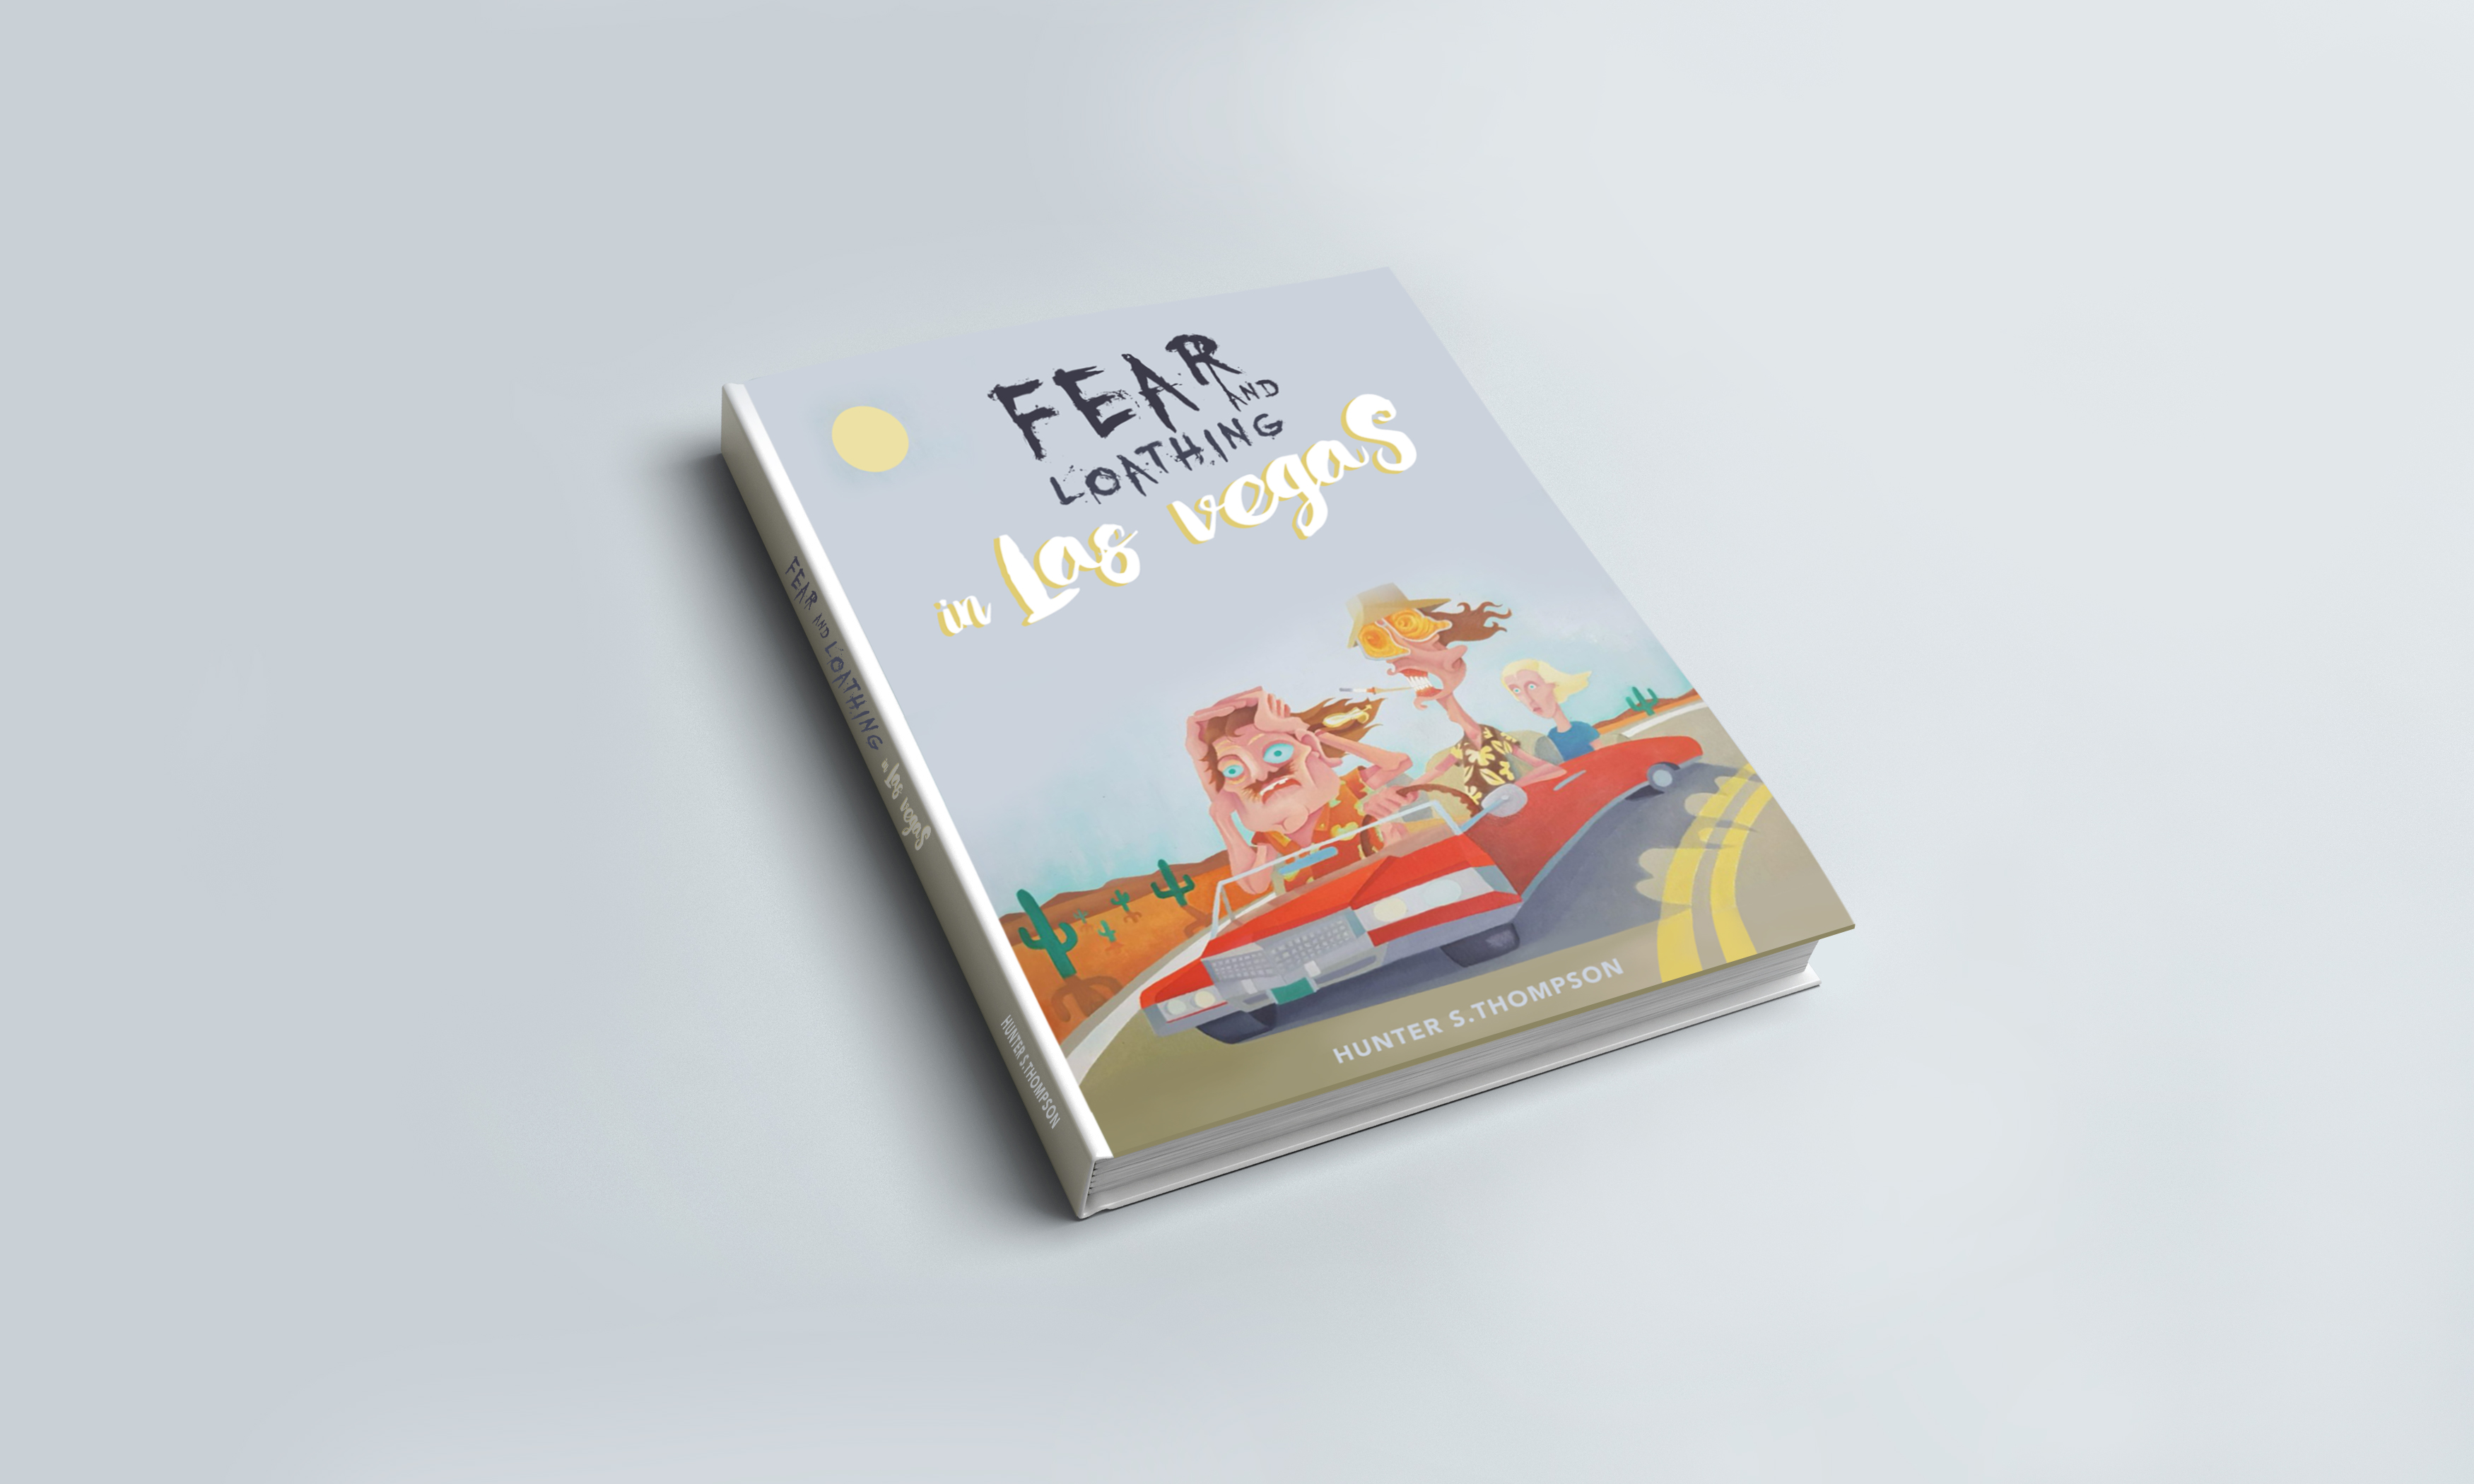 Fear-and-loathing-in-Las-vegas-parano-muckup-edition-cover-illustration-sconse